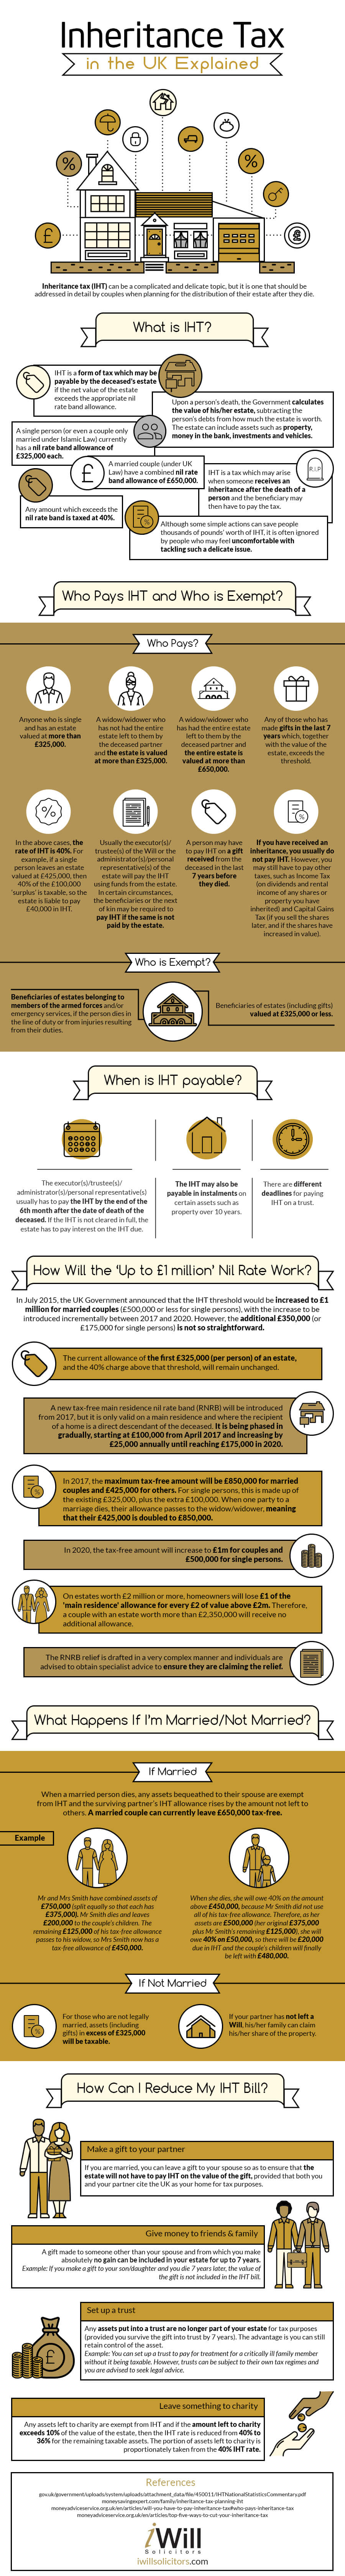 inheritance-tax-in-the-uk-infographic-plaza